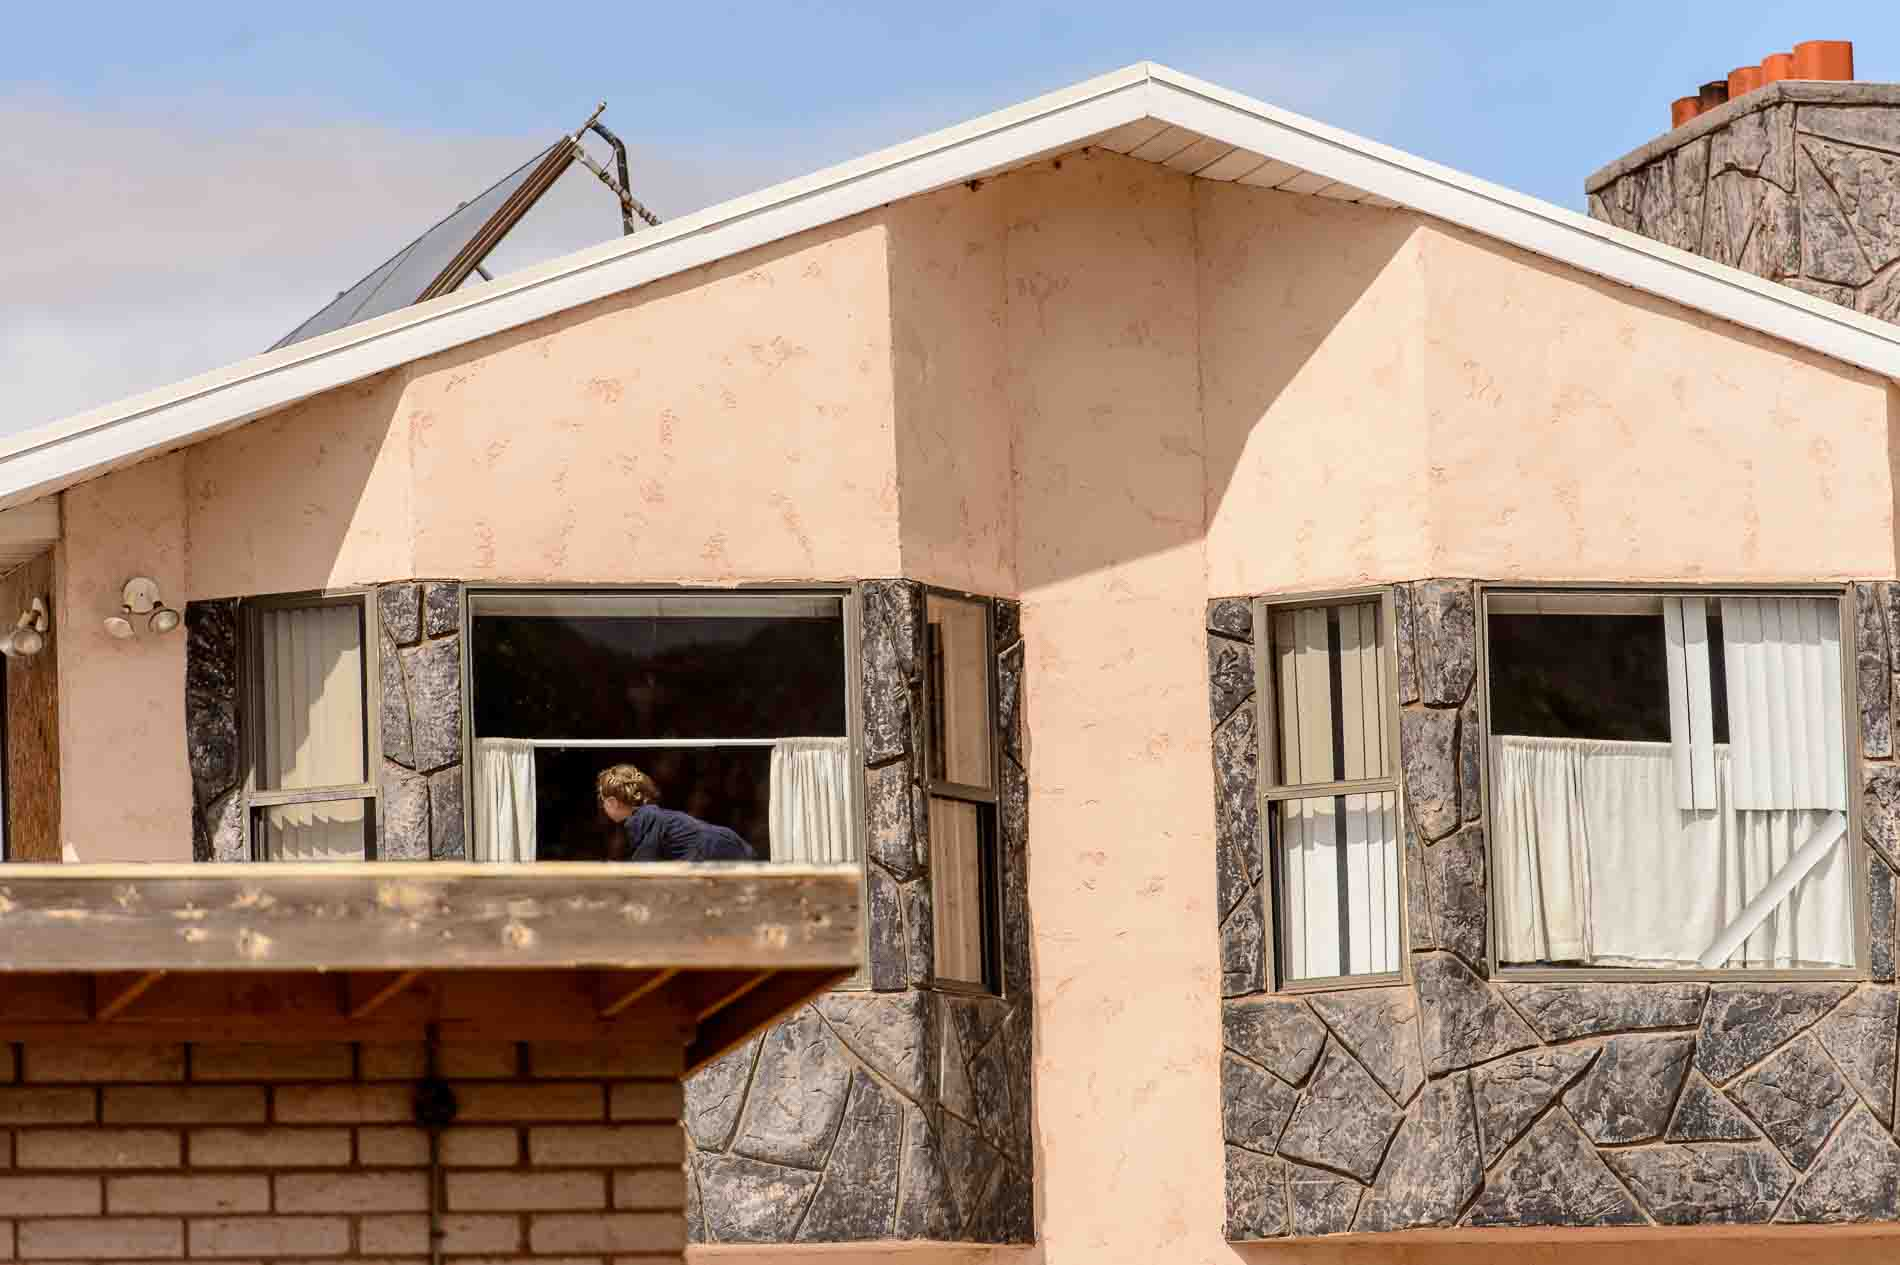 Photo: A girl in the window of a home in Colorado City, Arizona